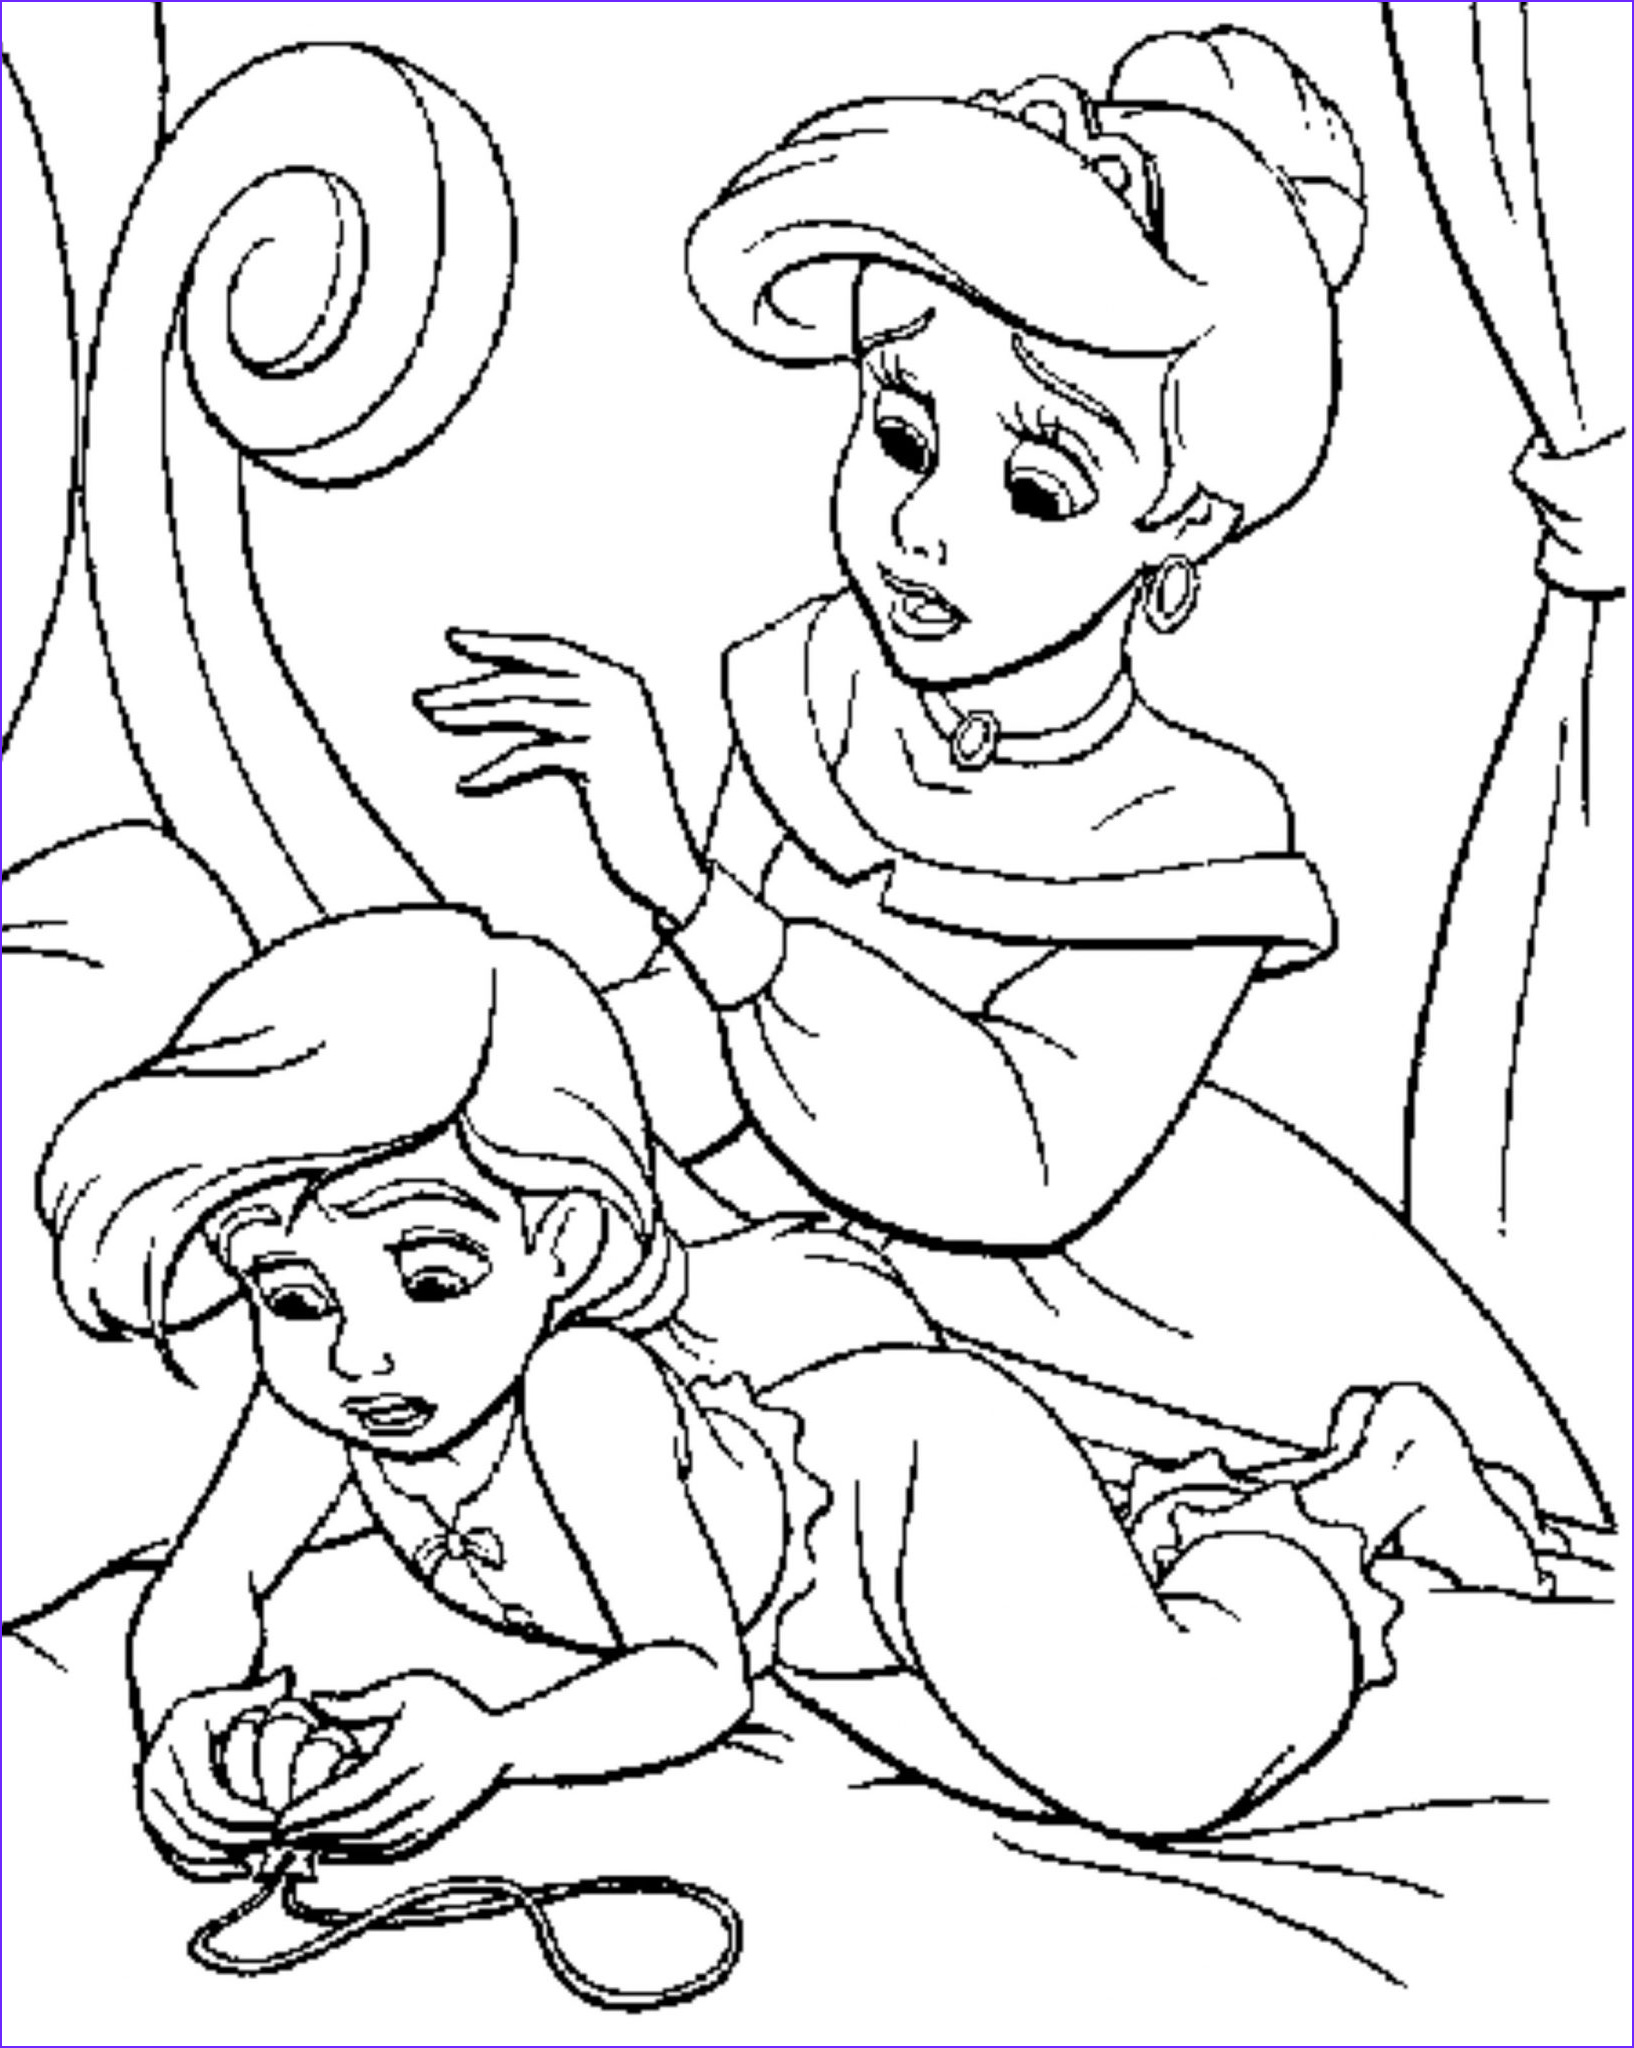 The Little Mermaid Coloring Pages Awesome Photos Print & Download Find the Suitable Little Mermaid